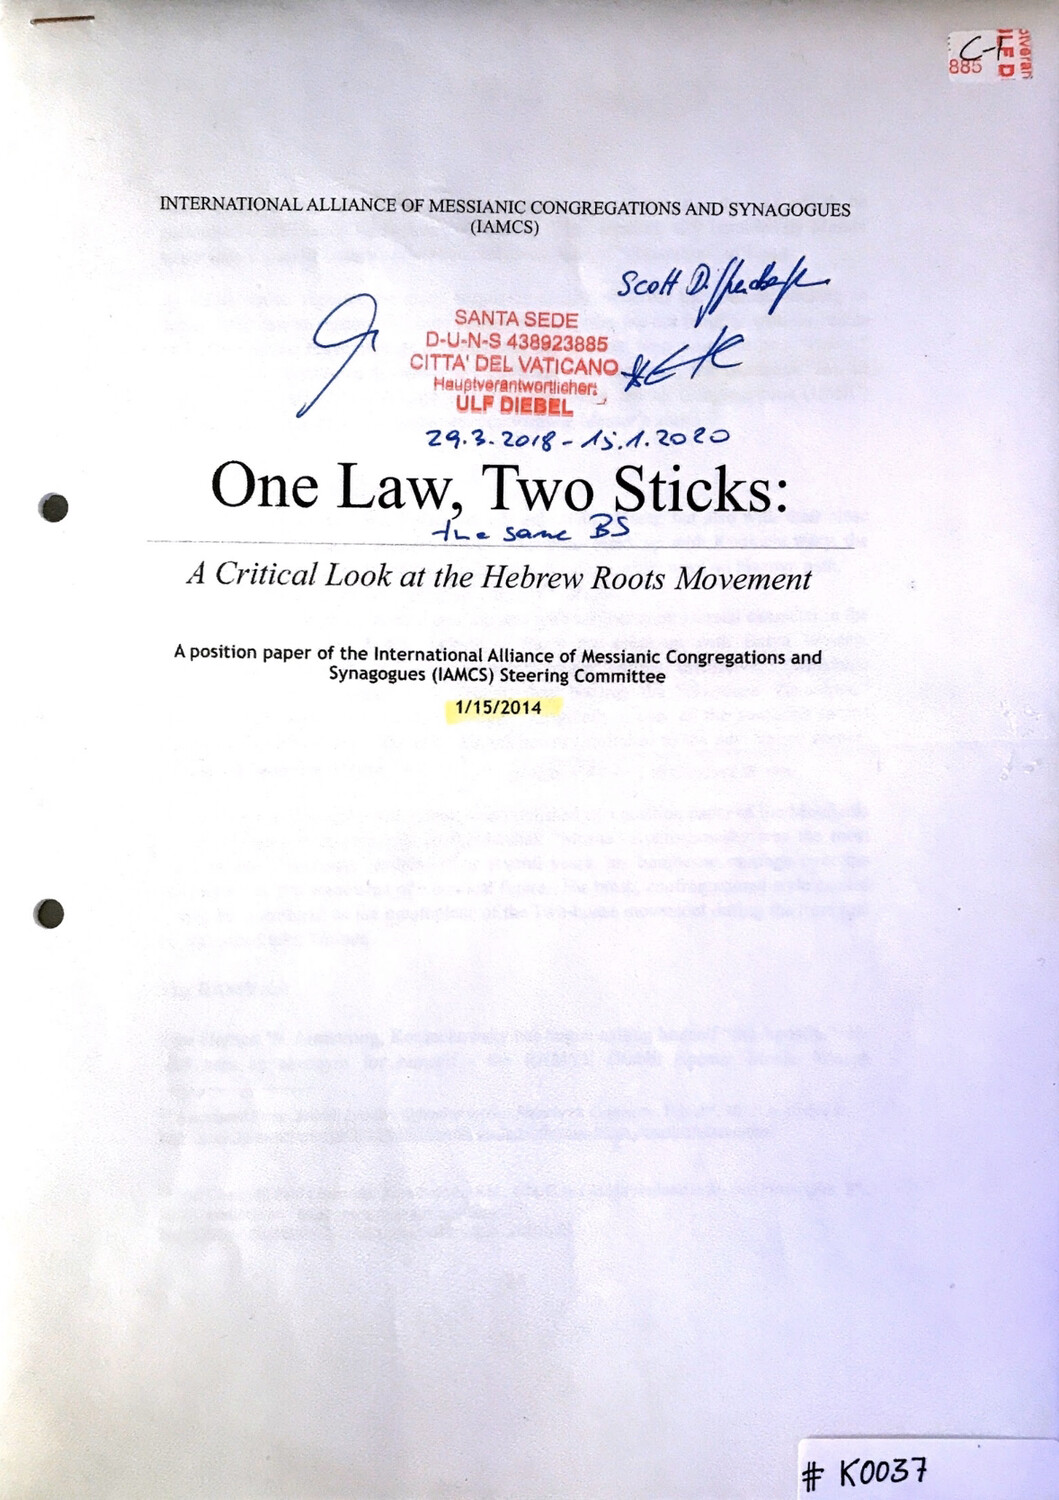 #K0037 l One Law, Two Sticks: A Critical Look at the Hebrew Roots Movement